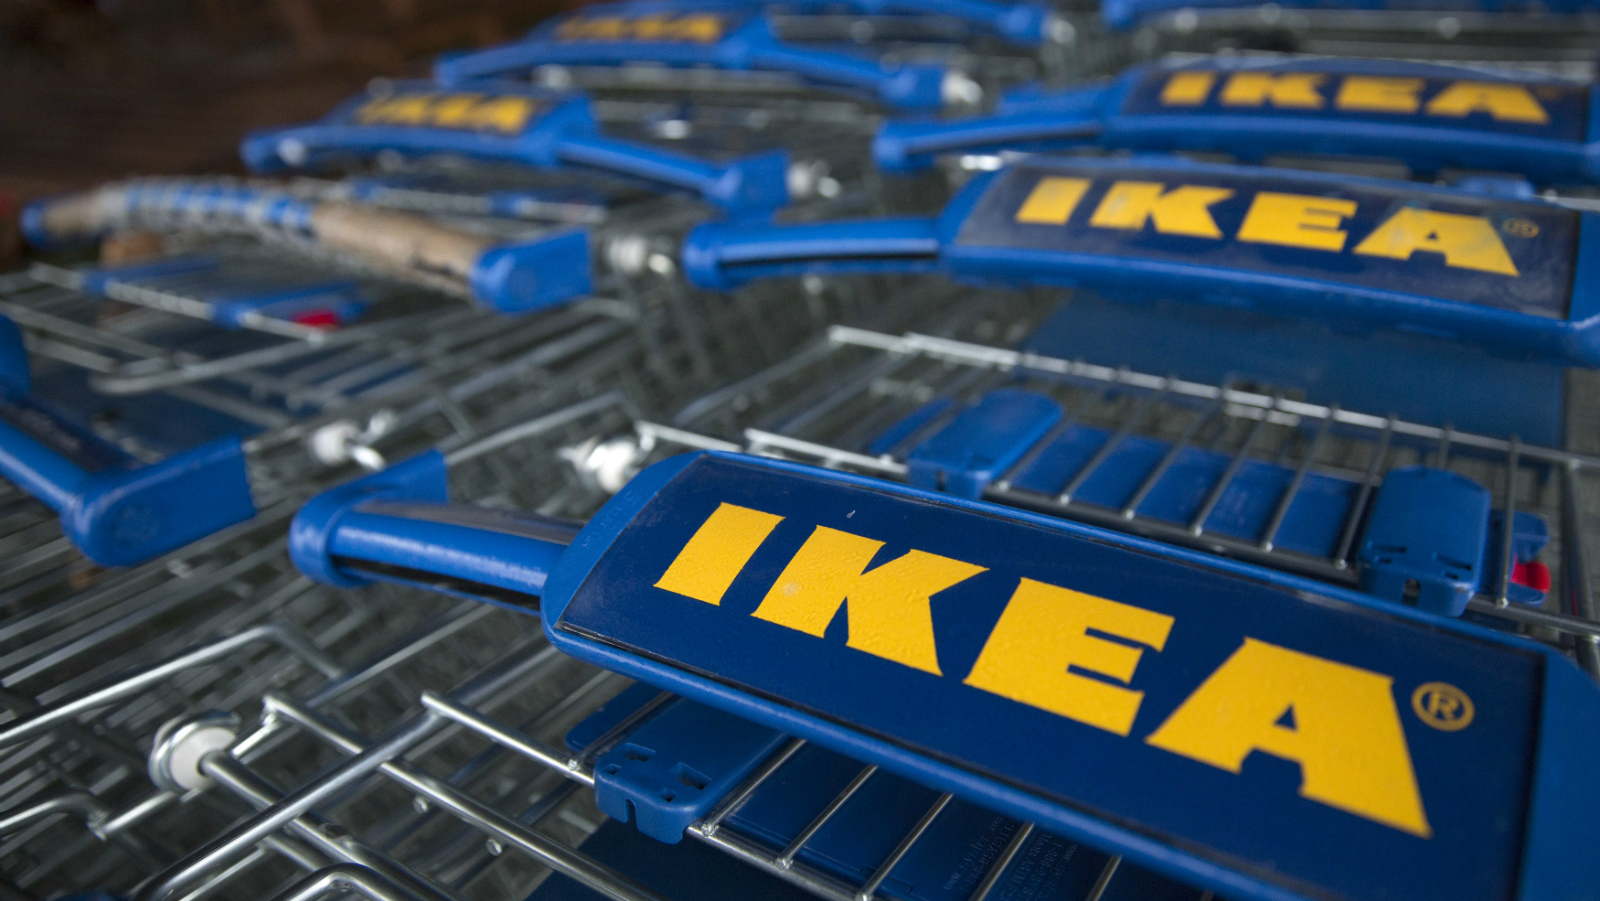 Trollies are seen outside an IKEA store in Wembley, north London January 28, 2015. IKEA Group, the world's biggest furniture retailer, posted on Wednesday a fiscal full-year net profit that was unchanged from the year before and said the European market continued to improve.